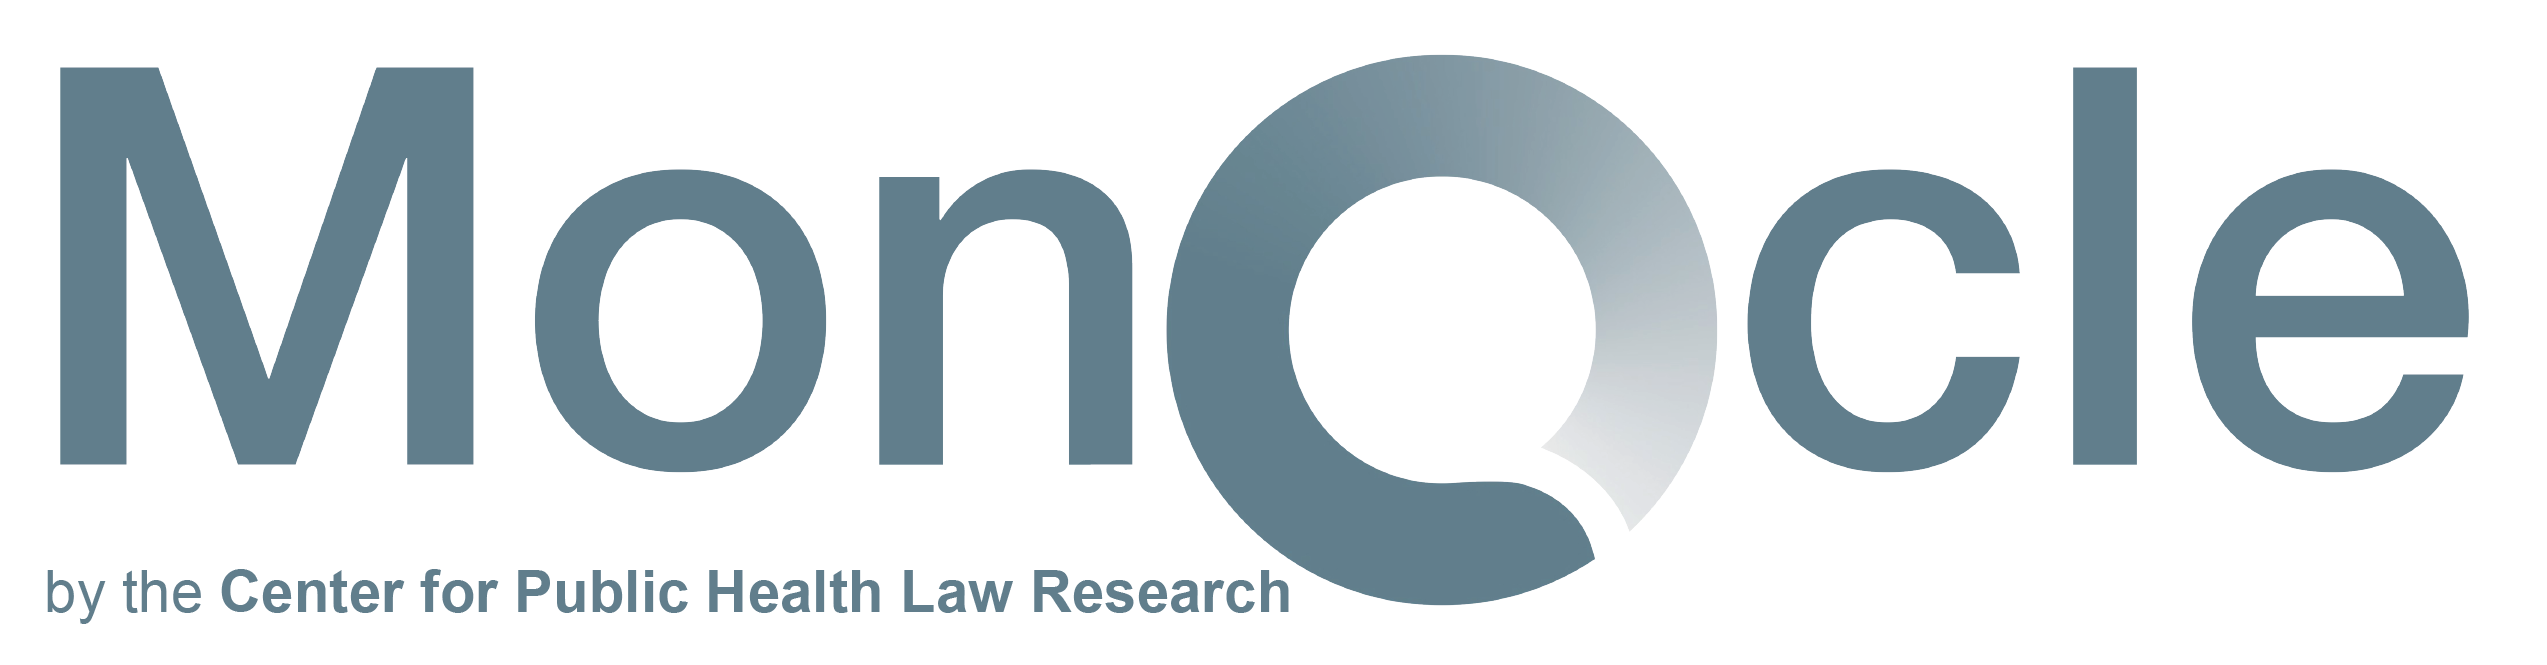 Legal Data and Research powered by MonQcle